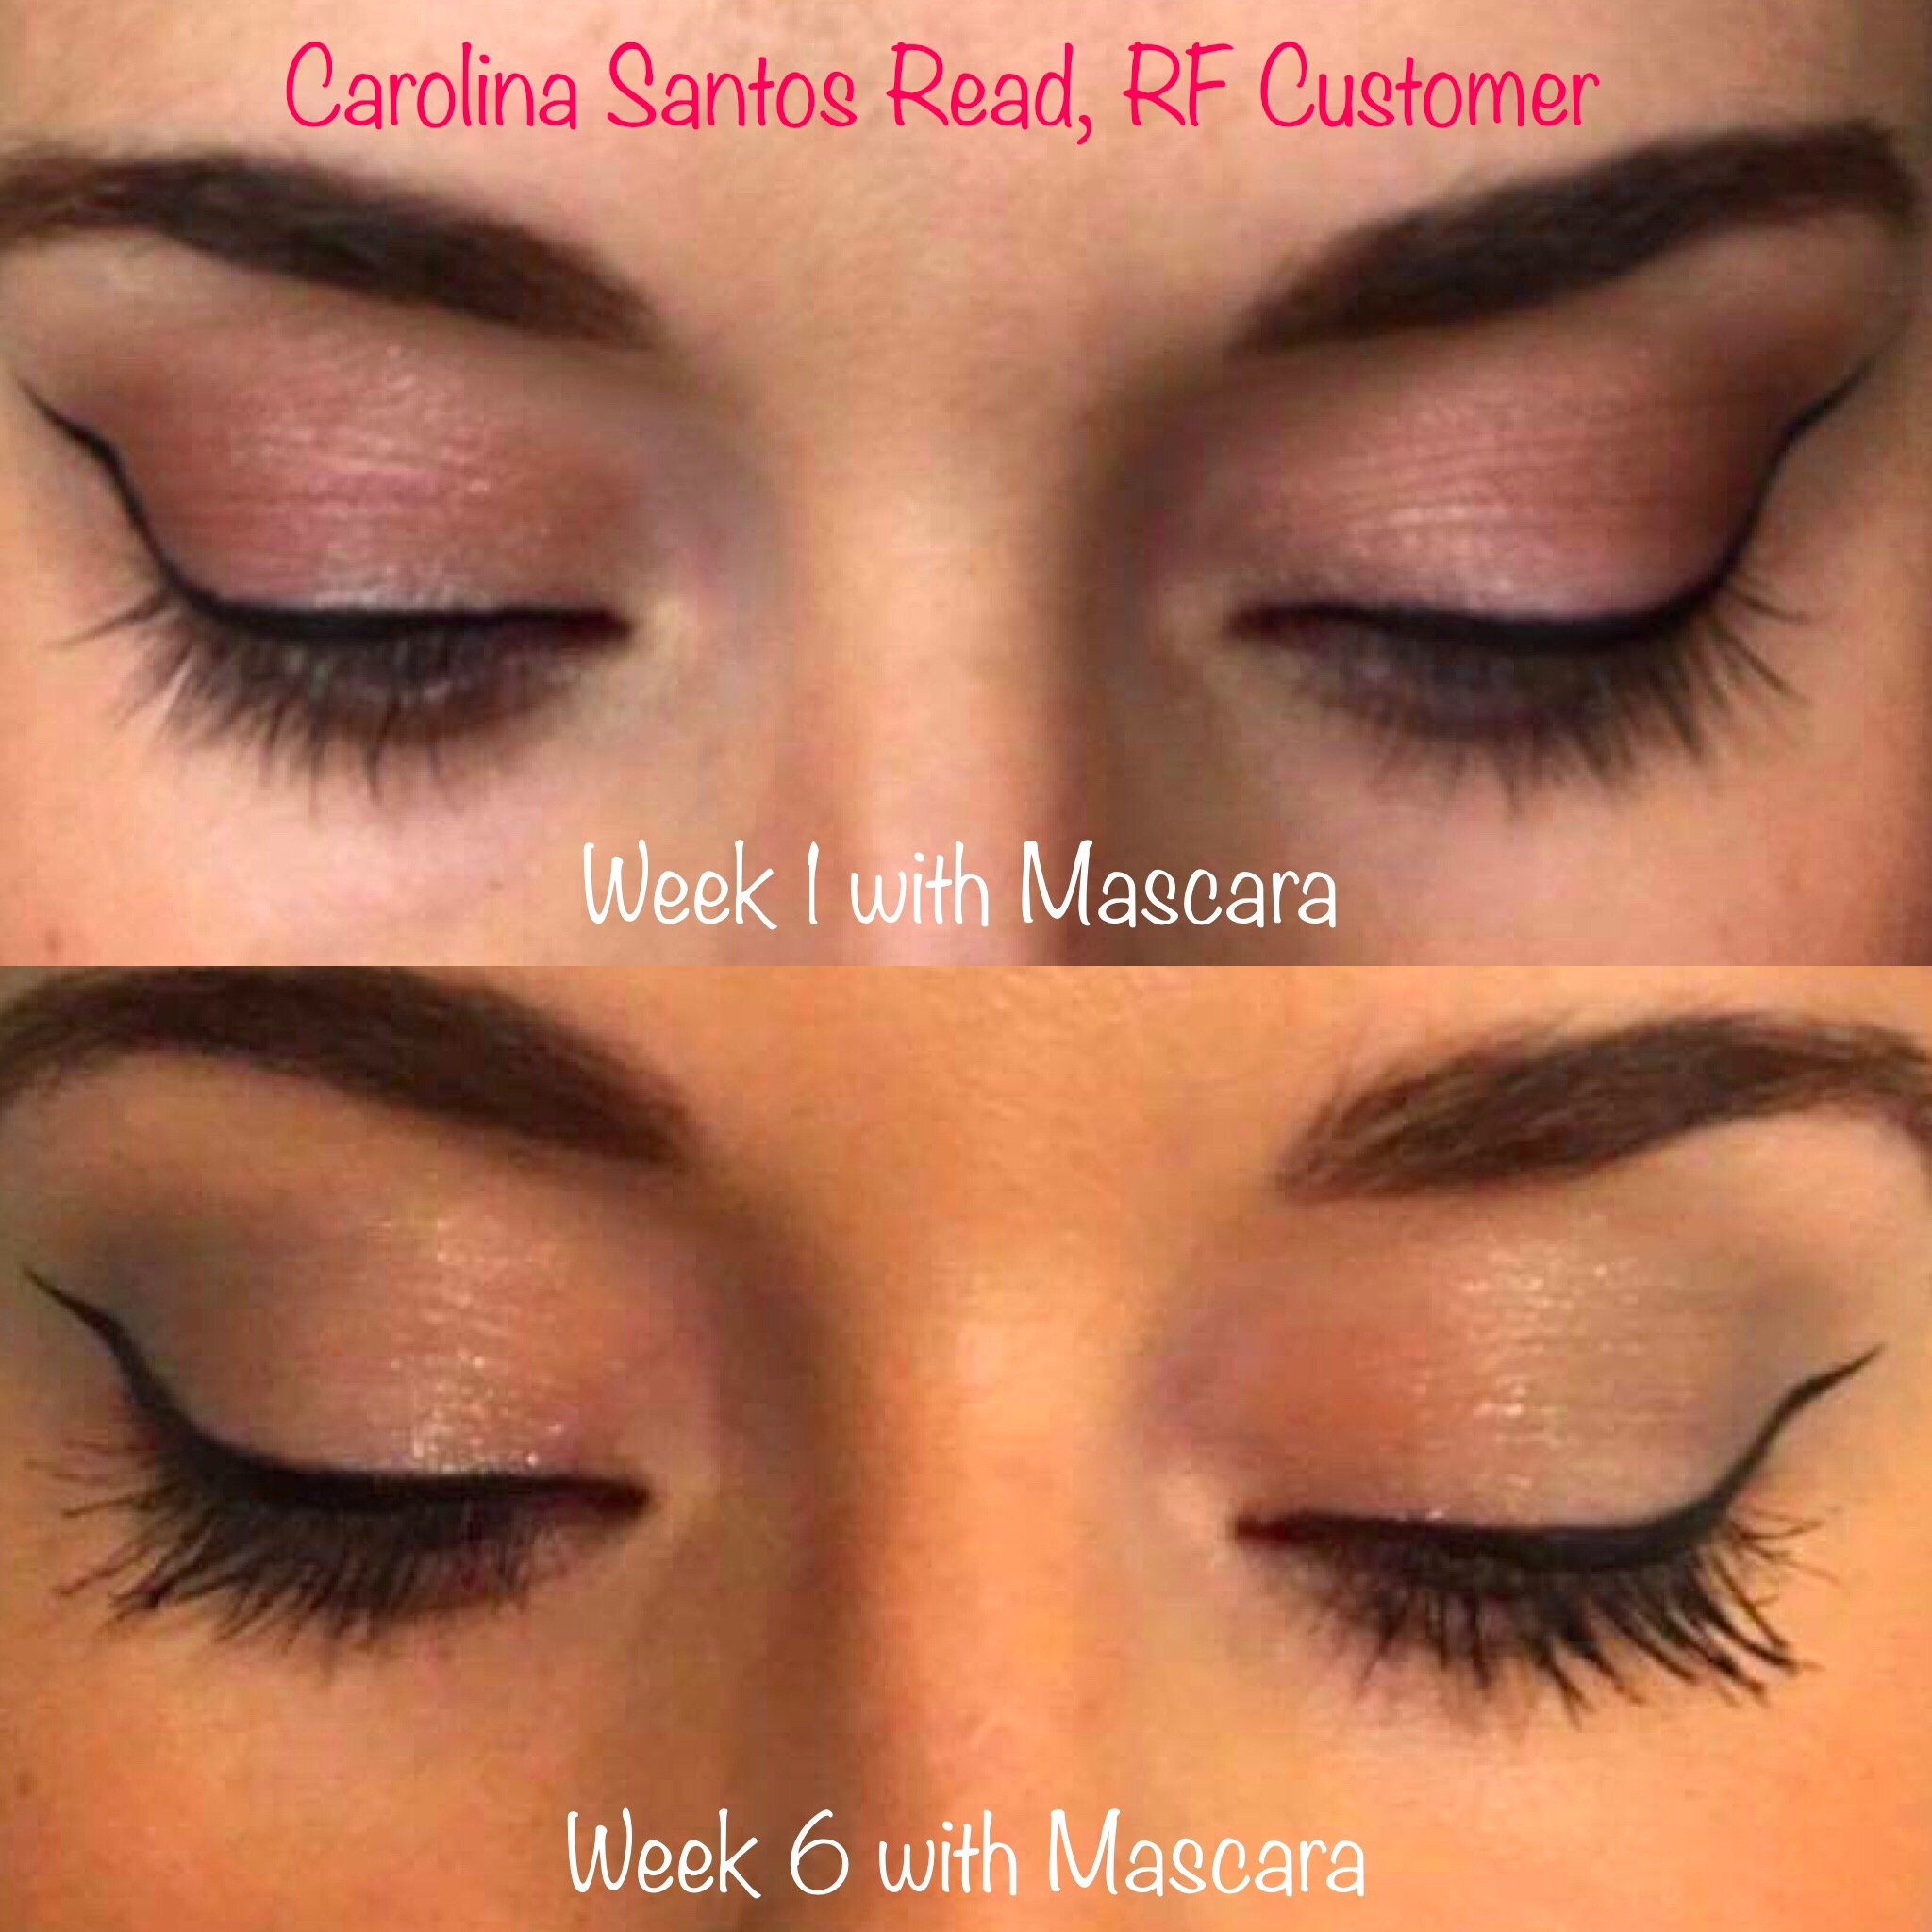 Here's my progress in just 6 weeks of using the product. These photos are unedited! Check out these modeling pics below to see how short my eyelashes were before. I tried eyelash extensions but I didn't like the maintenance or cost. This product really works!